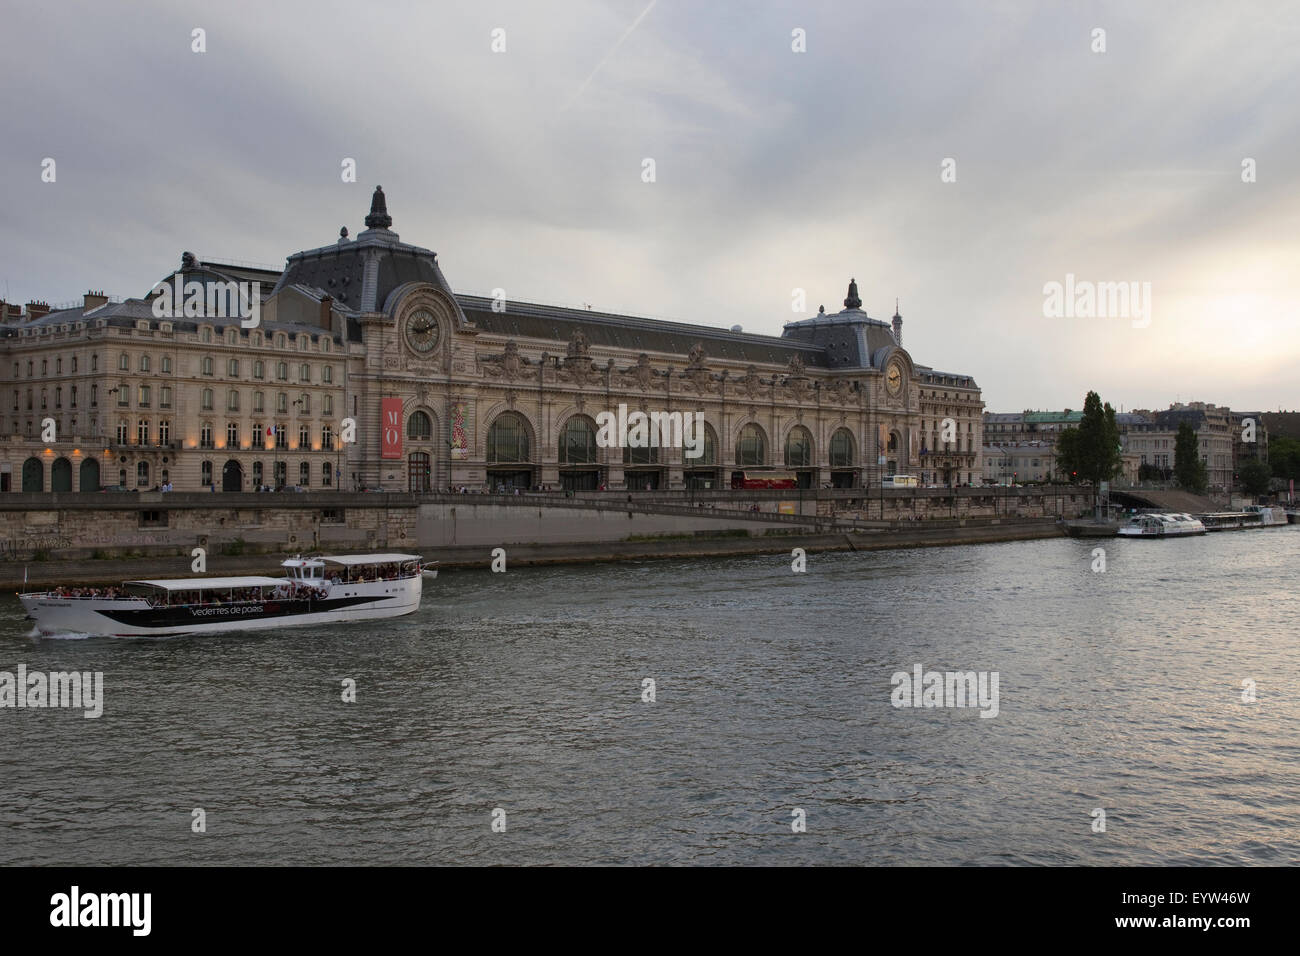 Wide-angle view of Musee D'Orsay in Paris, France. - Stock Image